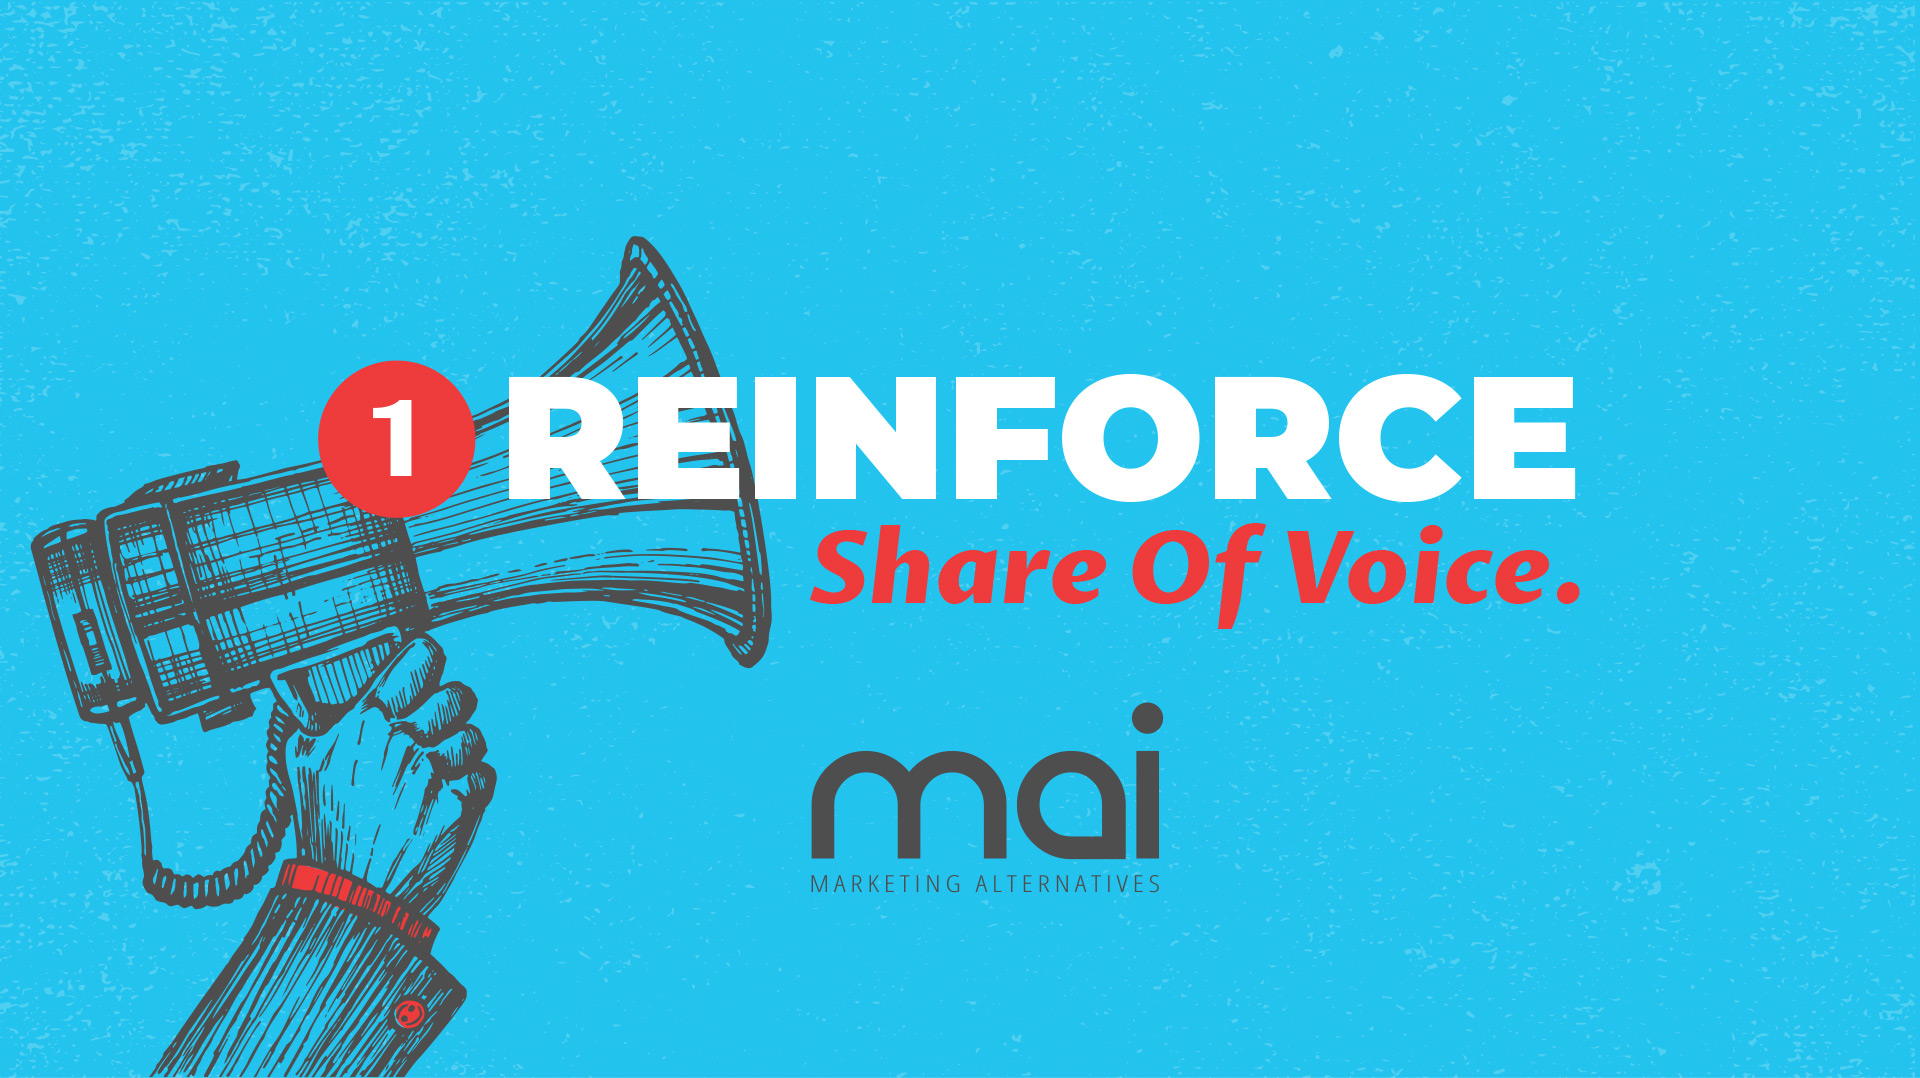 Reinforce Share Of Voice.